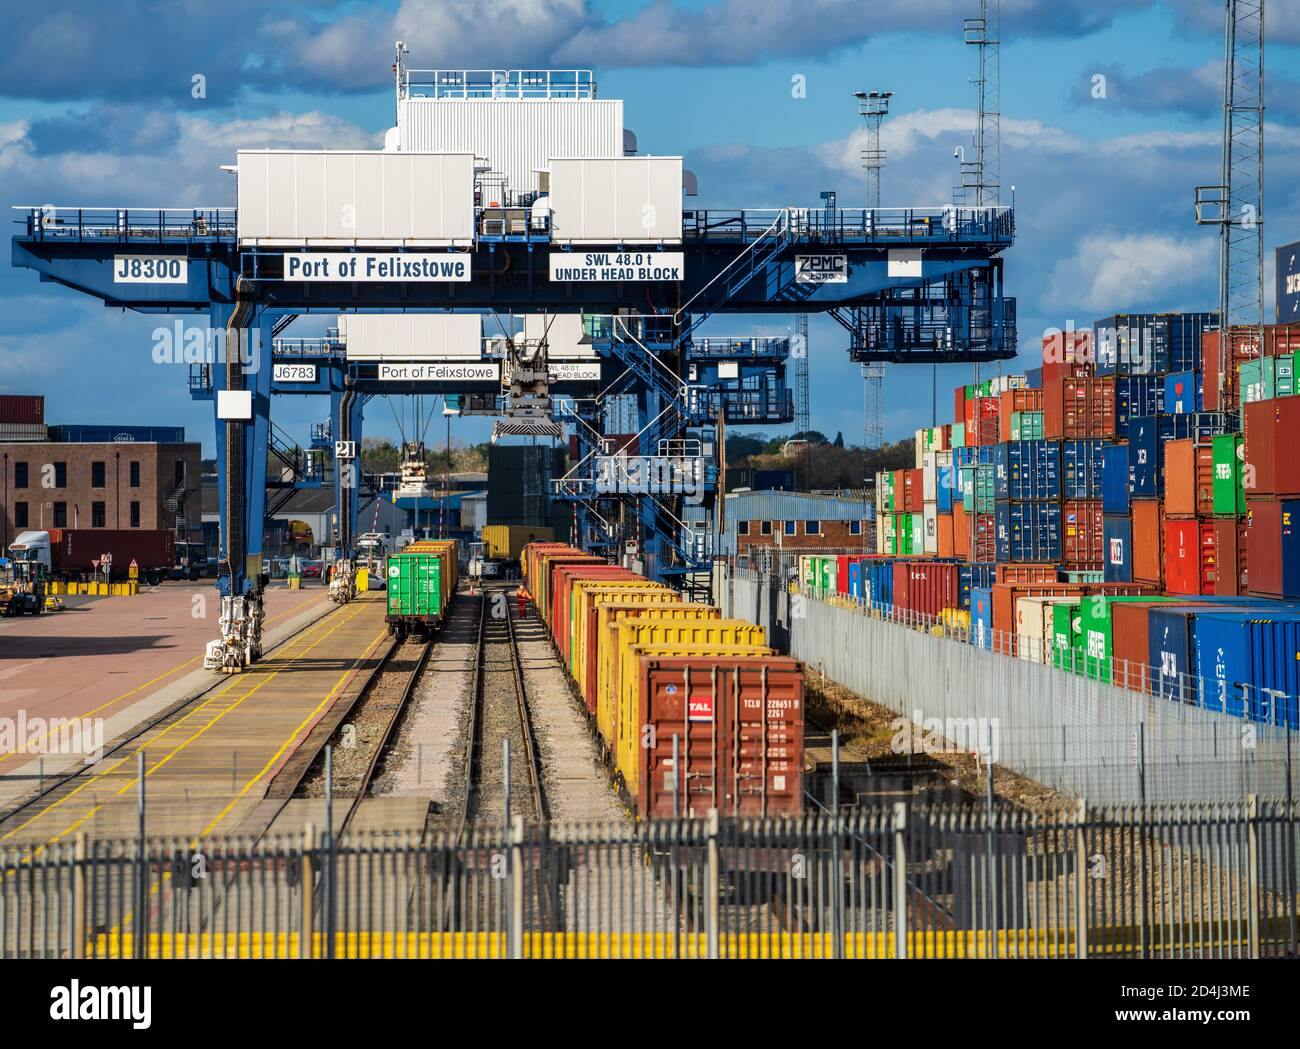 Rail Freight UK - Intermodal Containers being loaded onto freight trains in Felixstowe Port, the UK's largest container port. Stock Photo